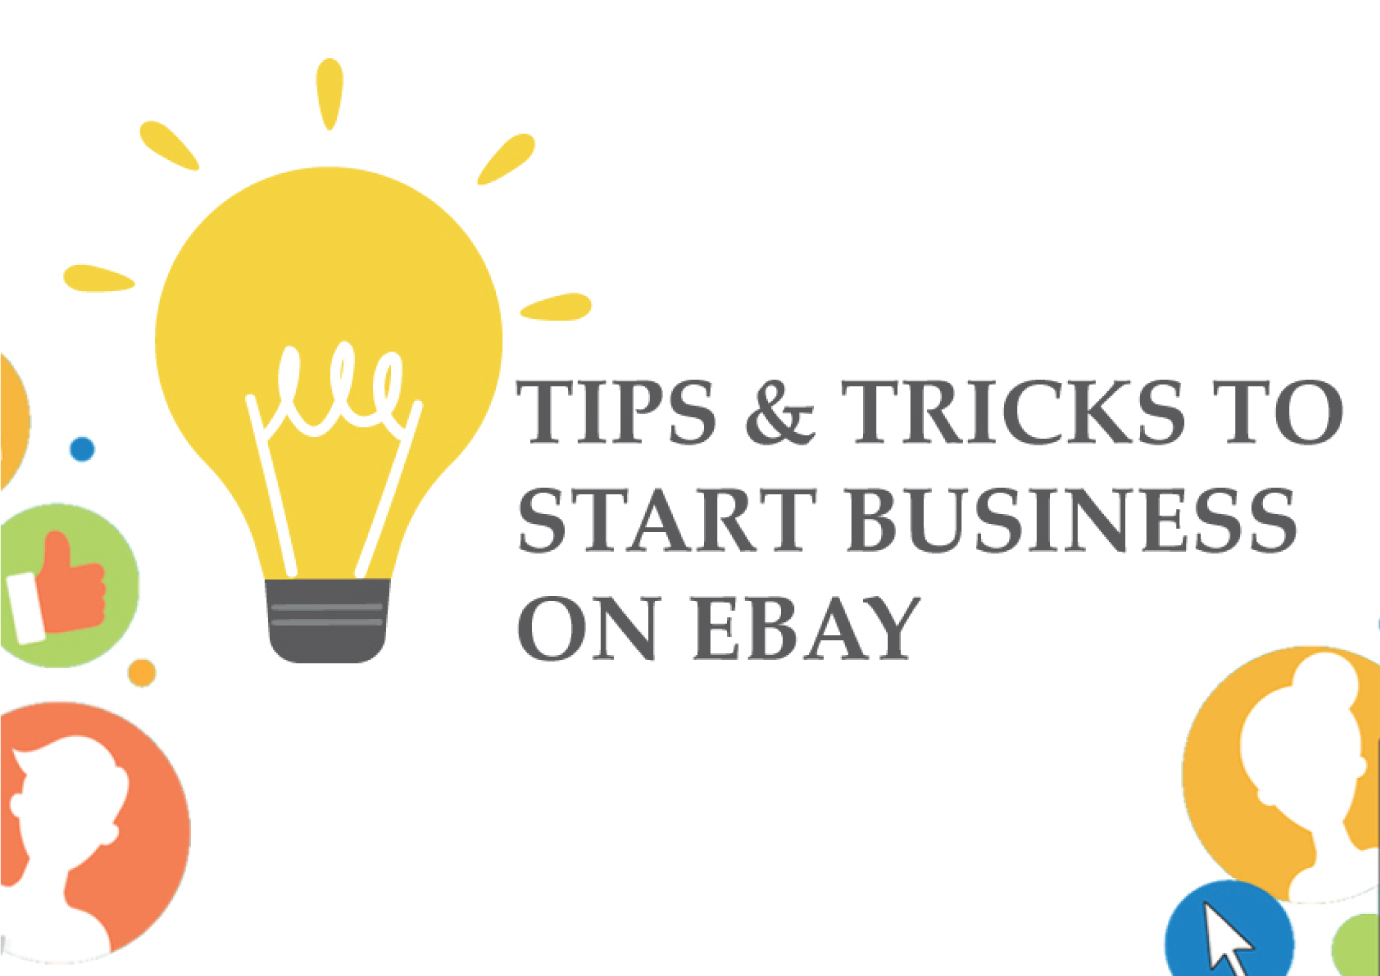 Tips and Tricks to start your business on eBay